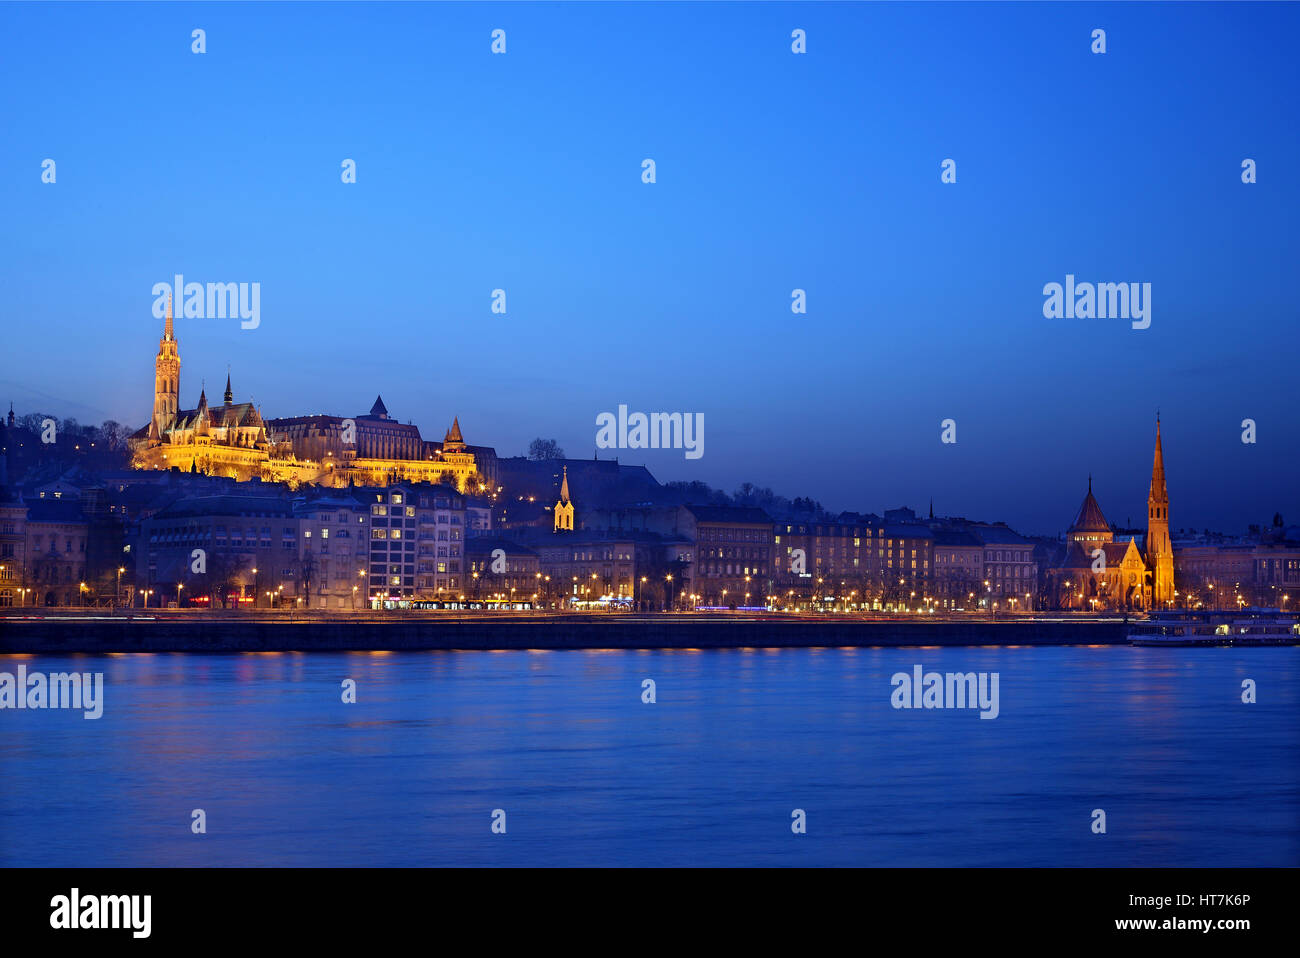 The 'Fisherman's bastion' and Matthias church on the side of Bude, as seen from the side of Pest, Budapest, - Stock Image